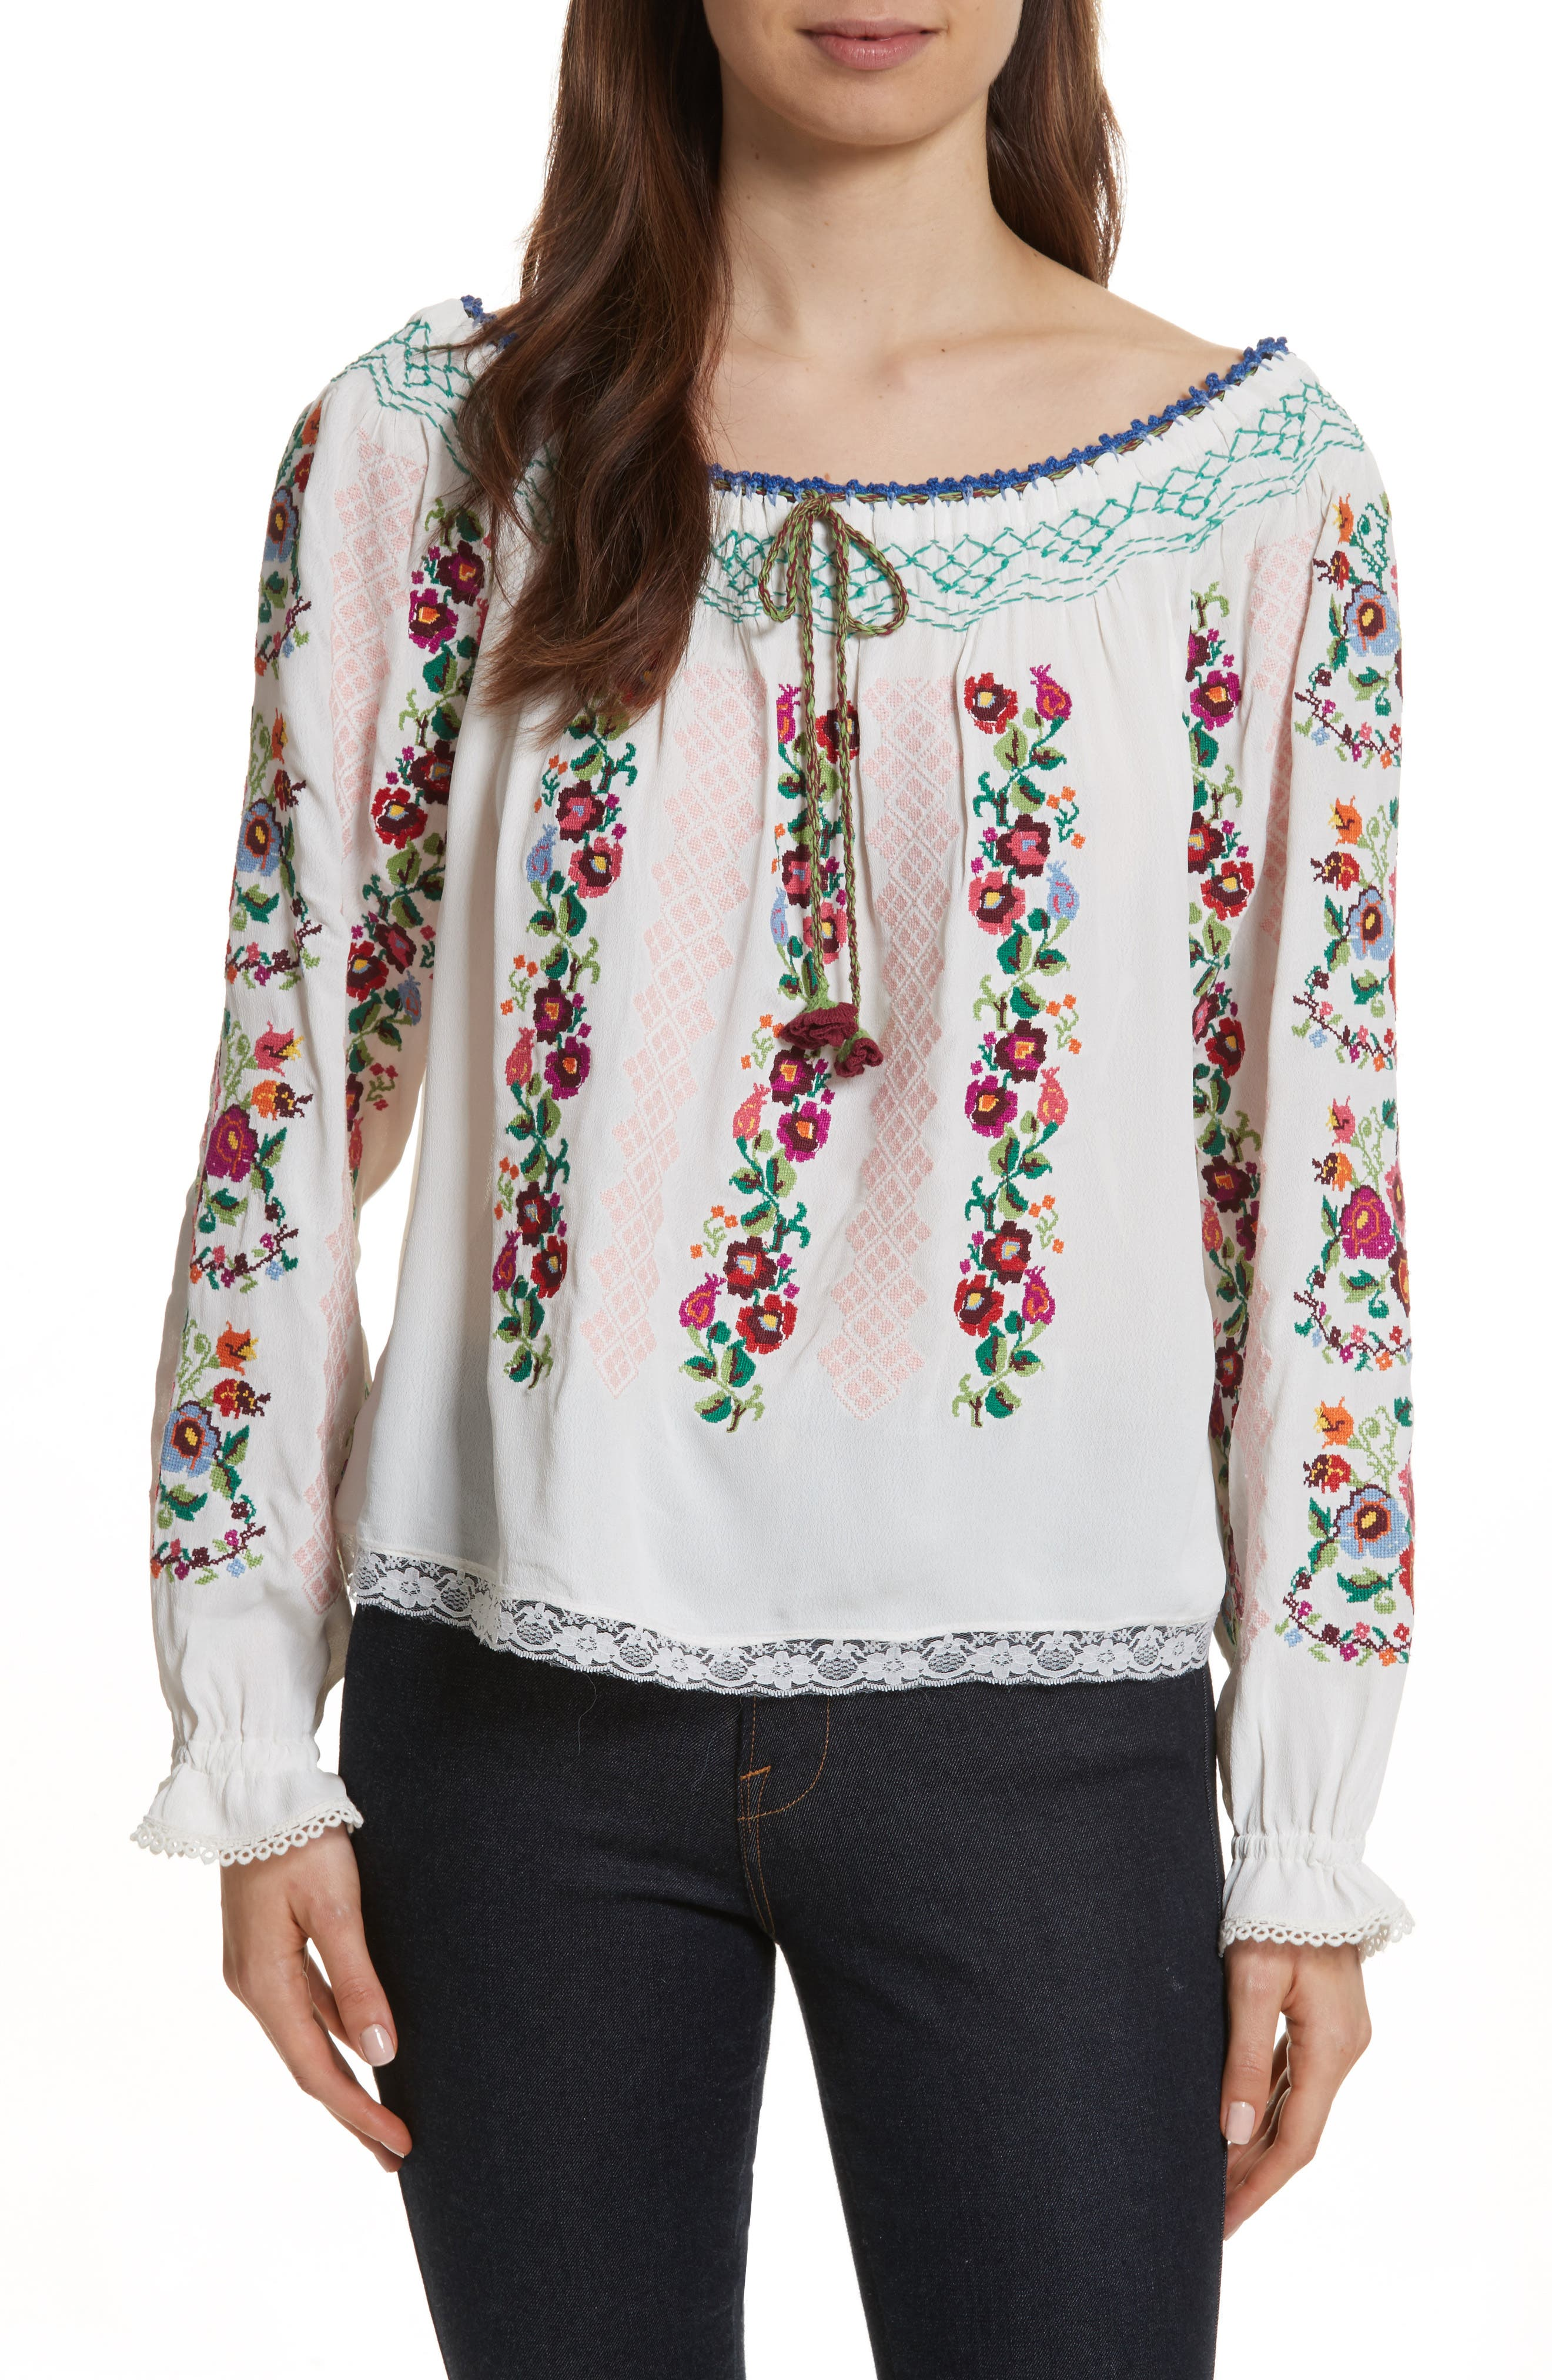 Main Image - Needle & Thread Cross Stitch Floral Top